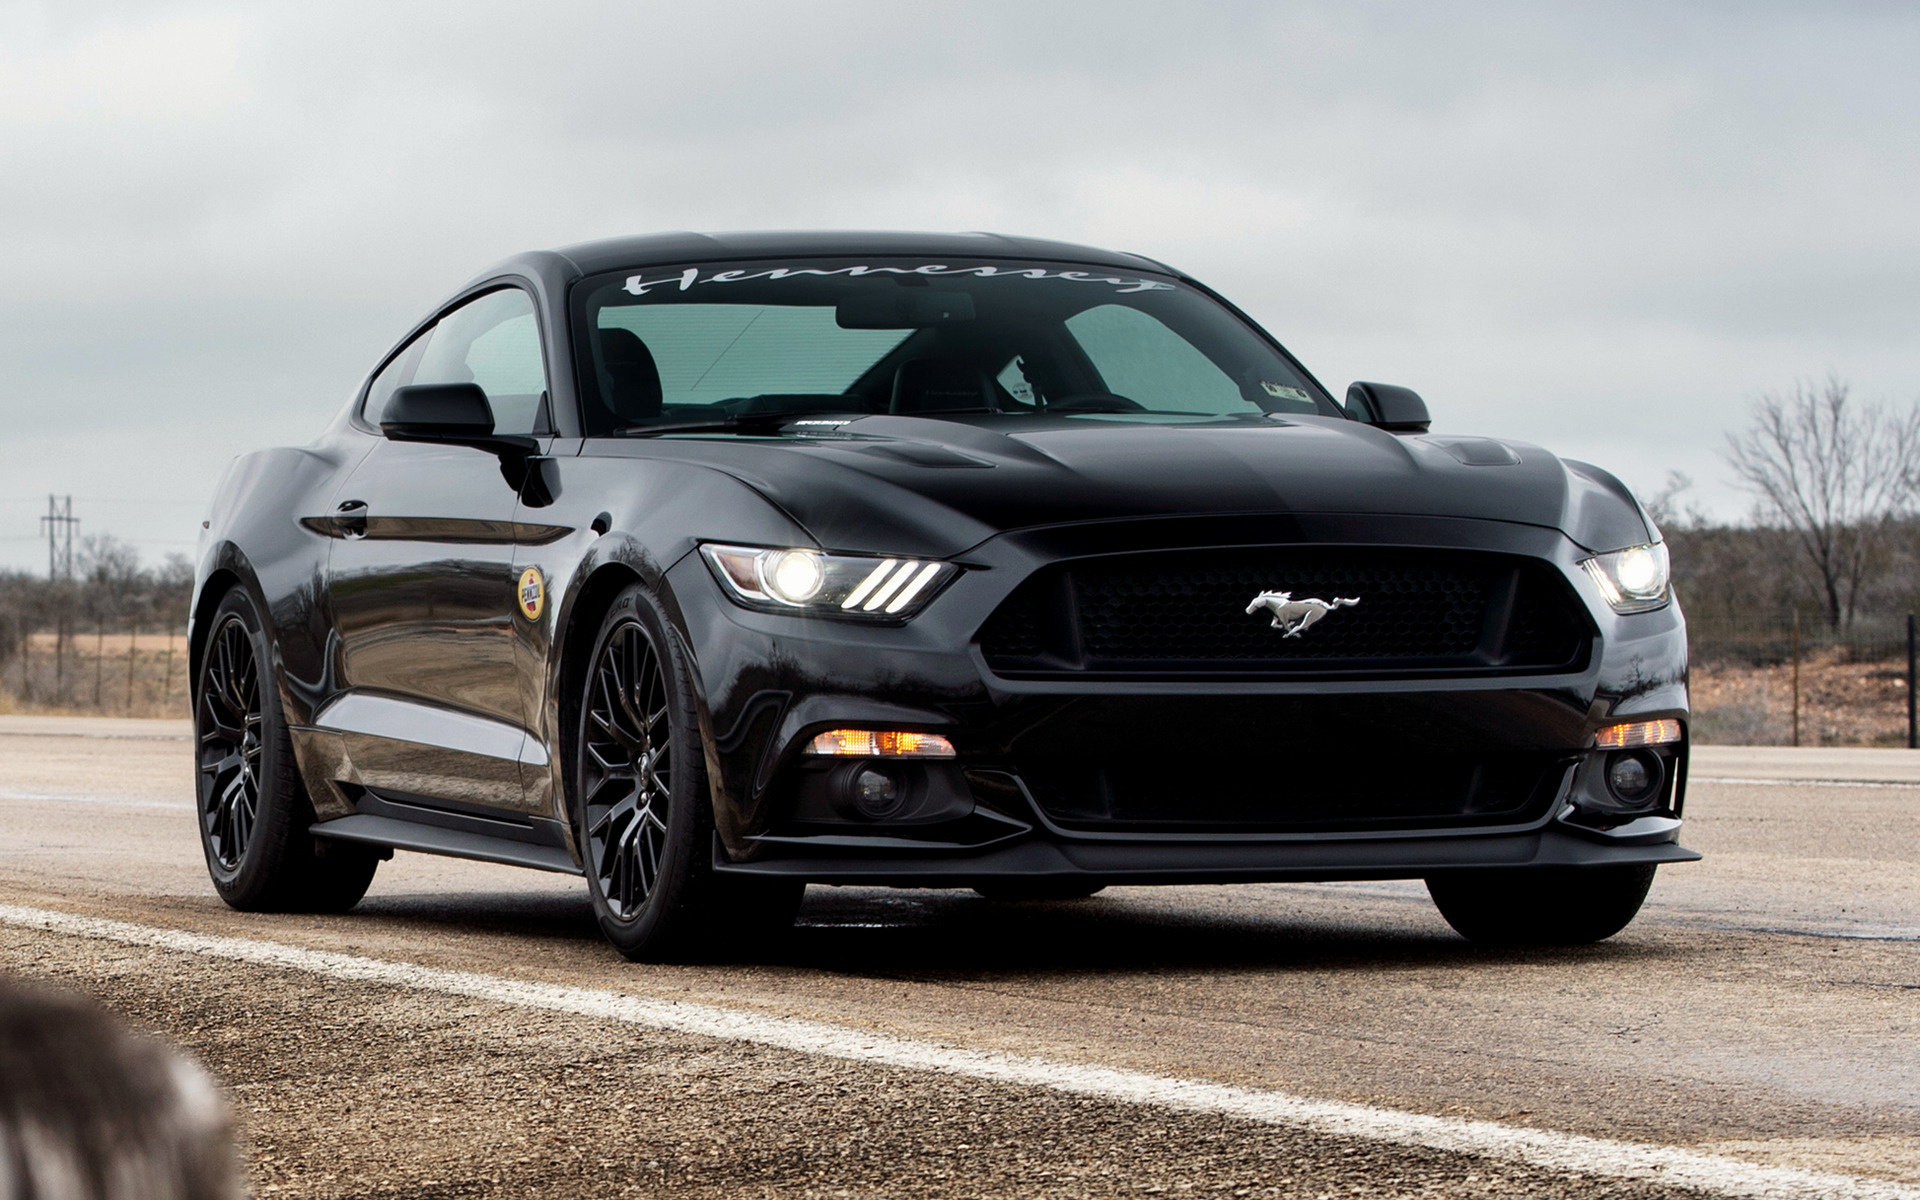 2015 Hennessey Mustang Gt Hpe700 Supercharged Wallpapers